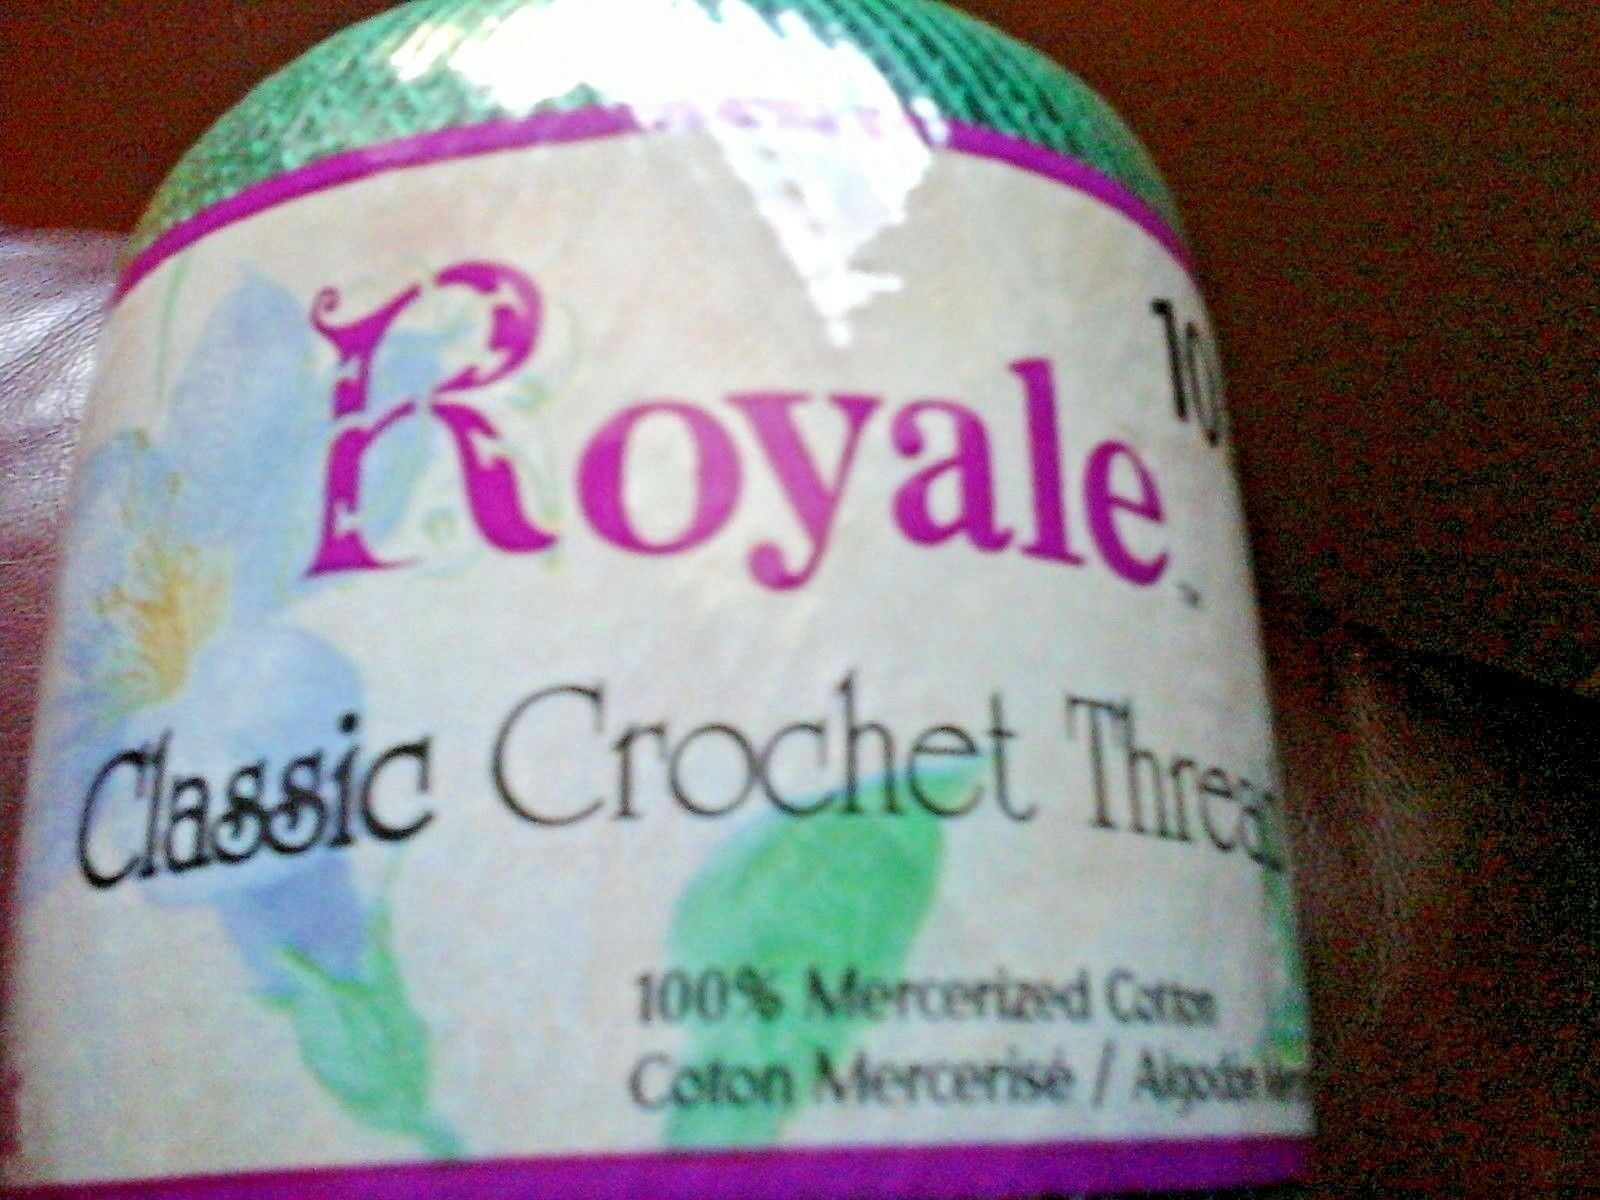 jp coats royal classic 100% cotton crochet thread color 449 forest green size 10 - $10.88